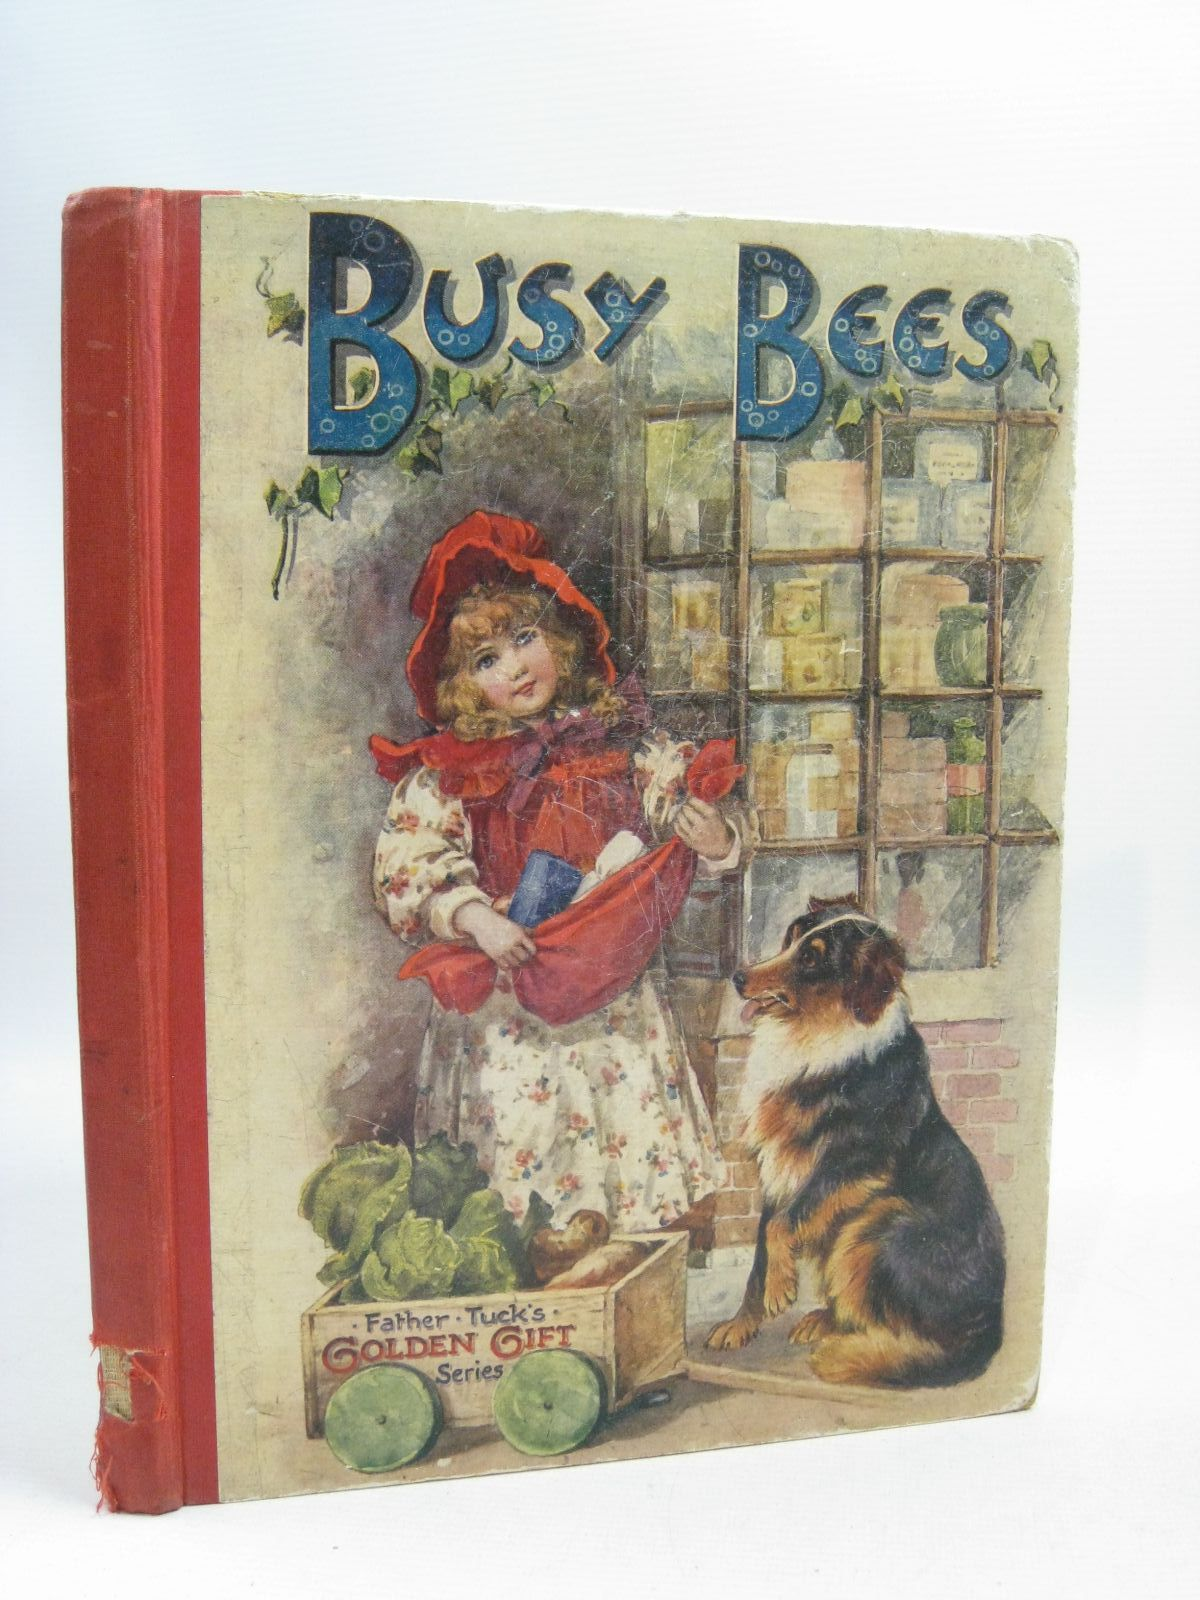 Photo of BUSY BEES written by Vredenburg, Edric Fenn, George Manville Burnside, Helen Marion Sowerby, Githa illustrated by Foster, W. Taylor, E.M. Cowham, Hilda Attwell, Mabel Lucie Neilson, Harry B. et al., published by Raphael Tuck & Sons Ltd. (STOCK CODE: 1505466)  for sale by Stella & Rose's Books